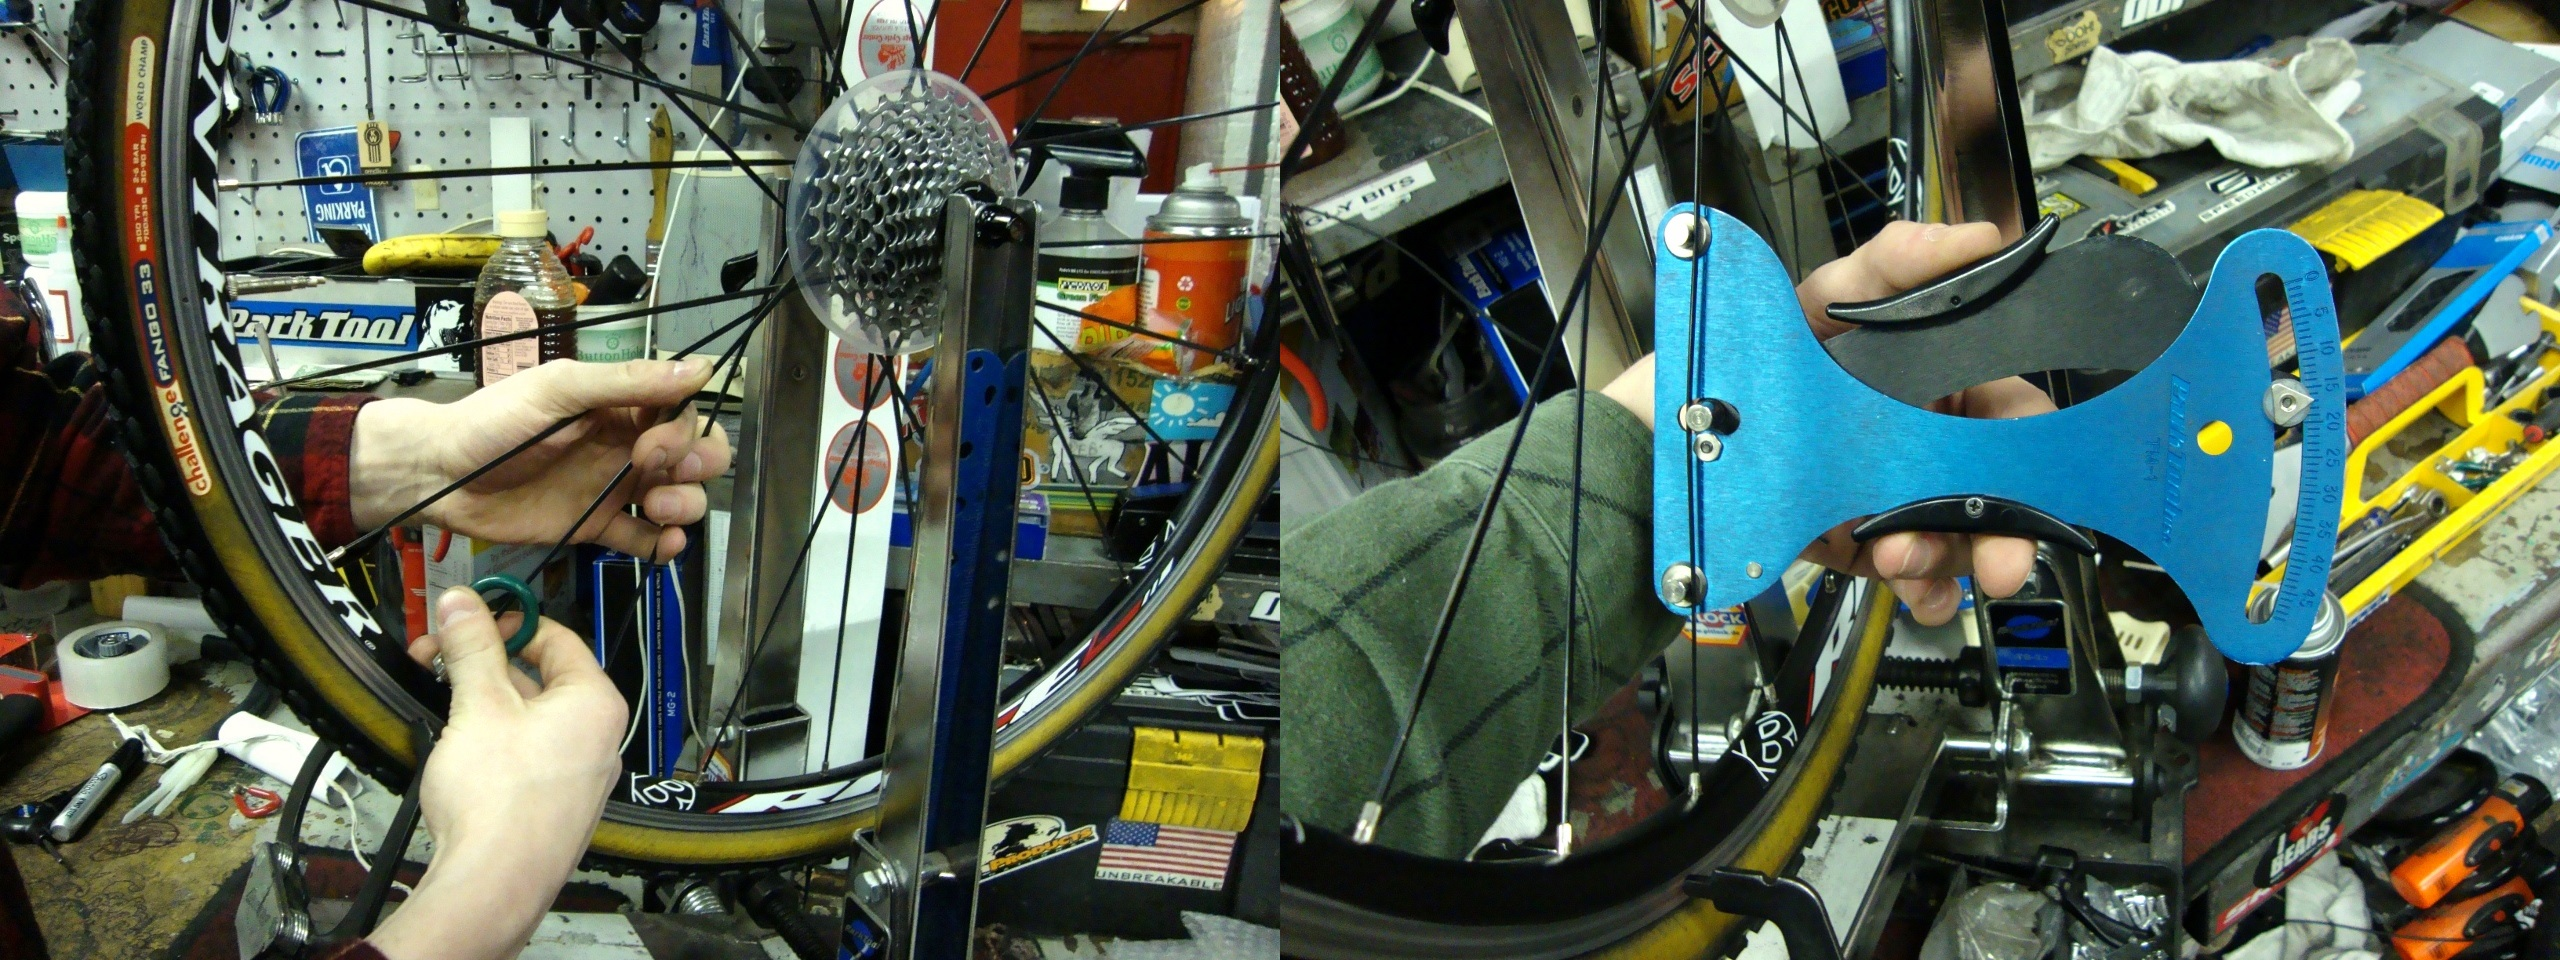 part of our bike tune-ups include checking the wheel spoke tension